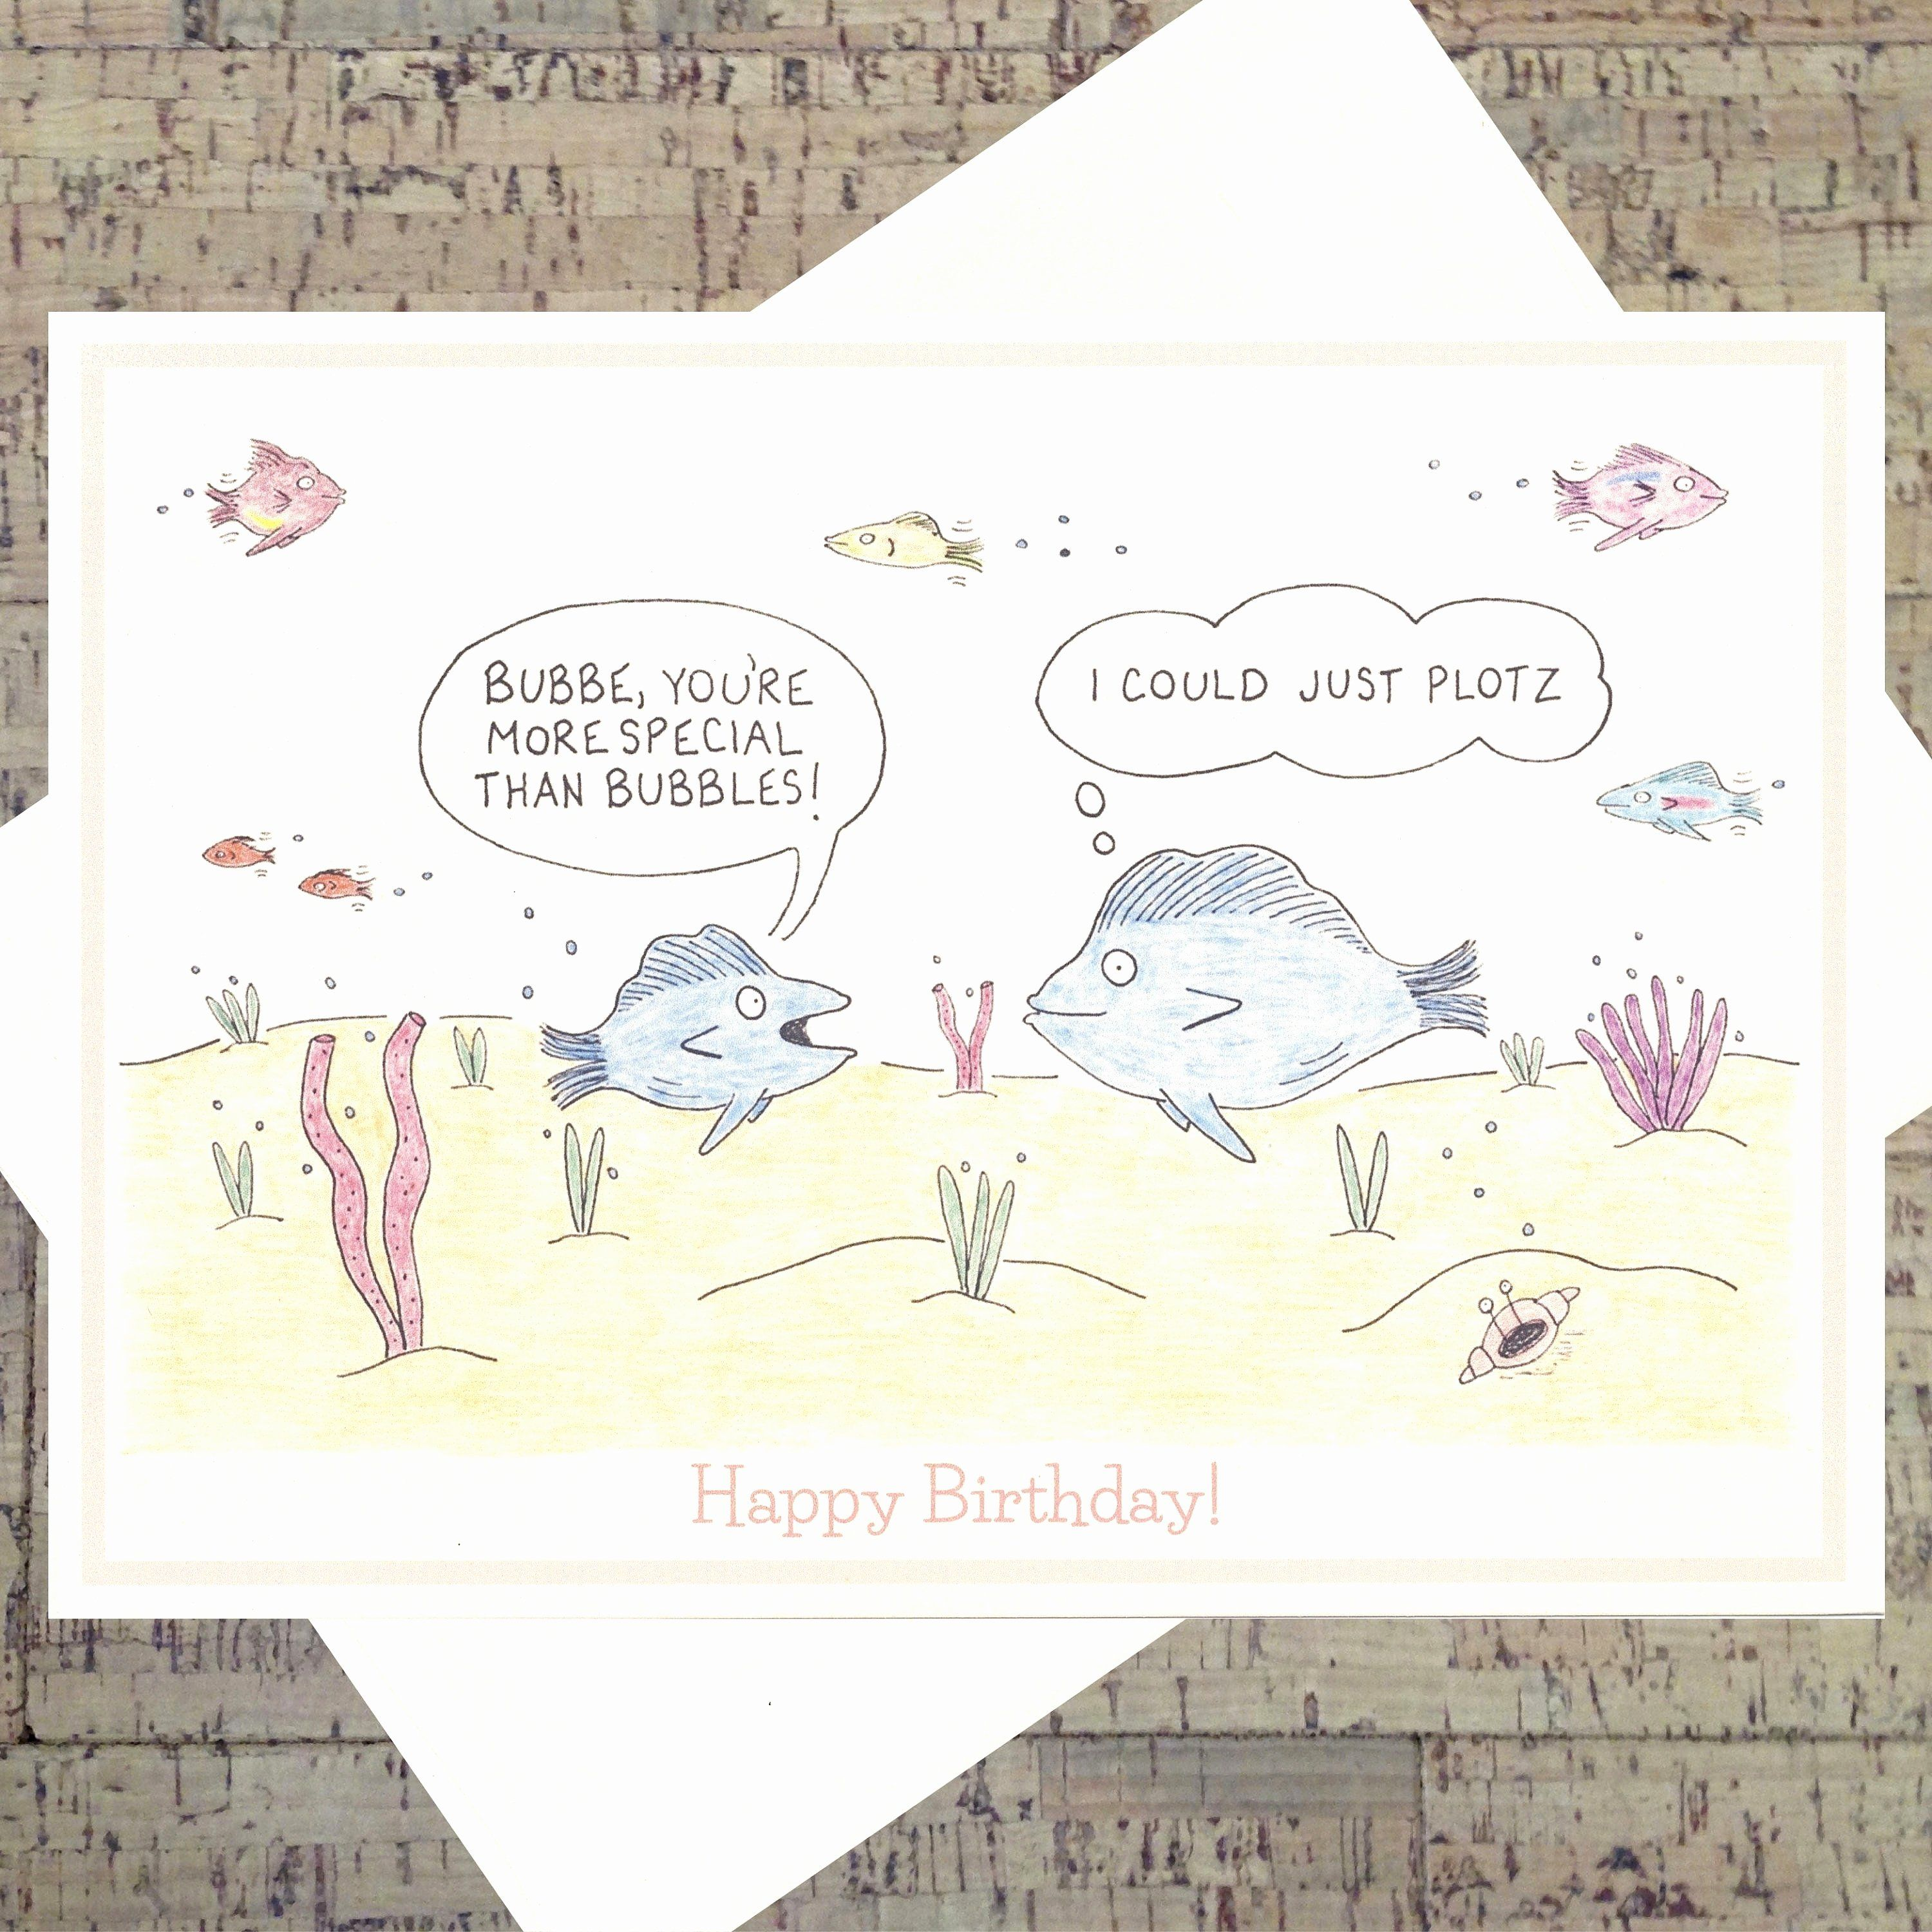 Rosh Hashanah Cards in 2020 Funny birthday cards